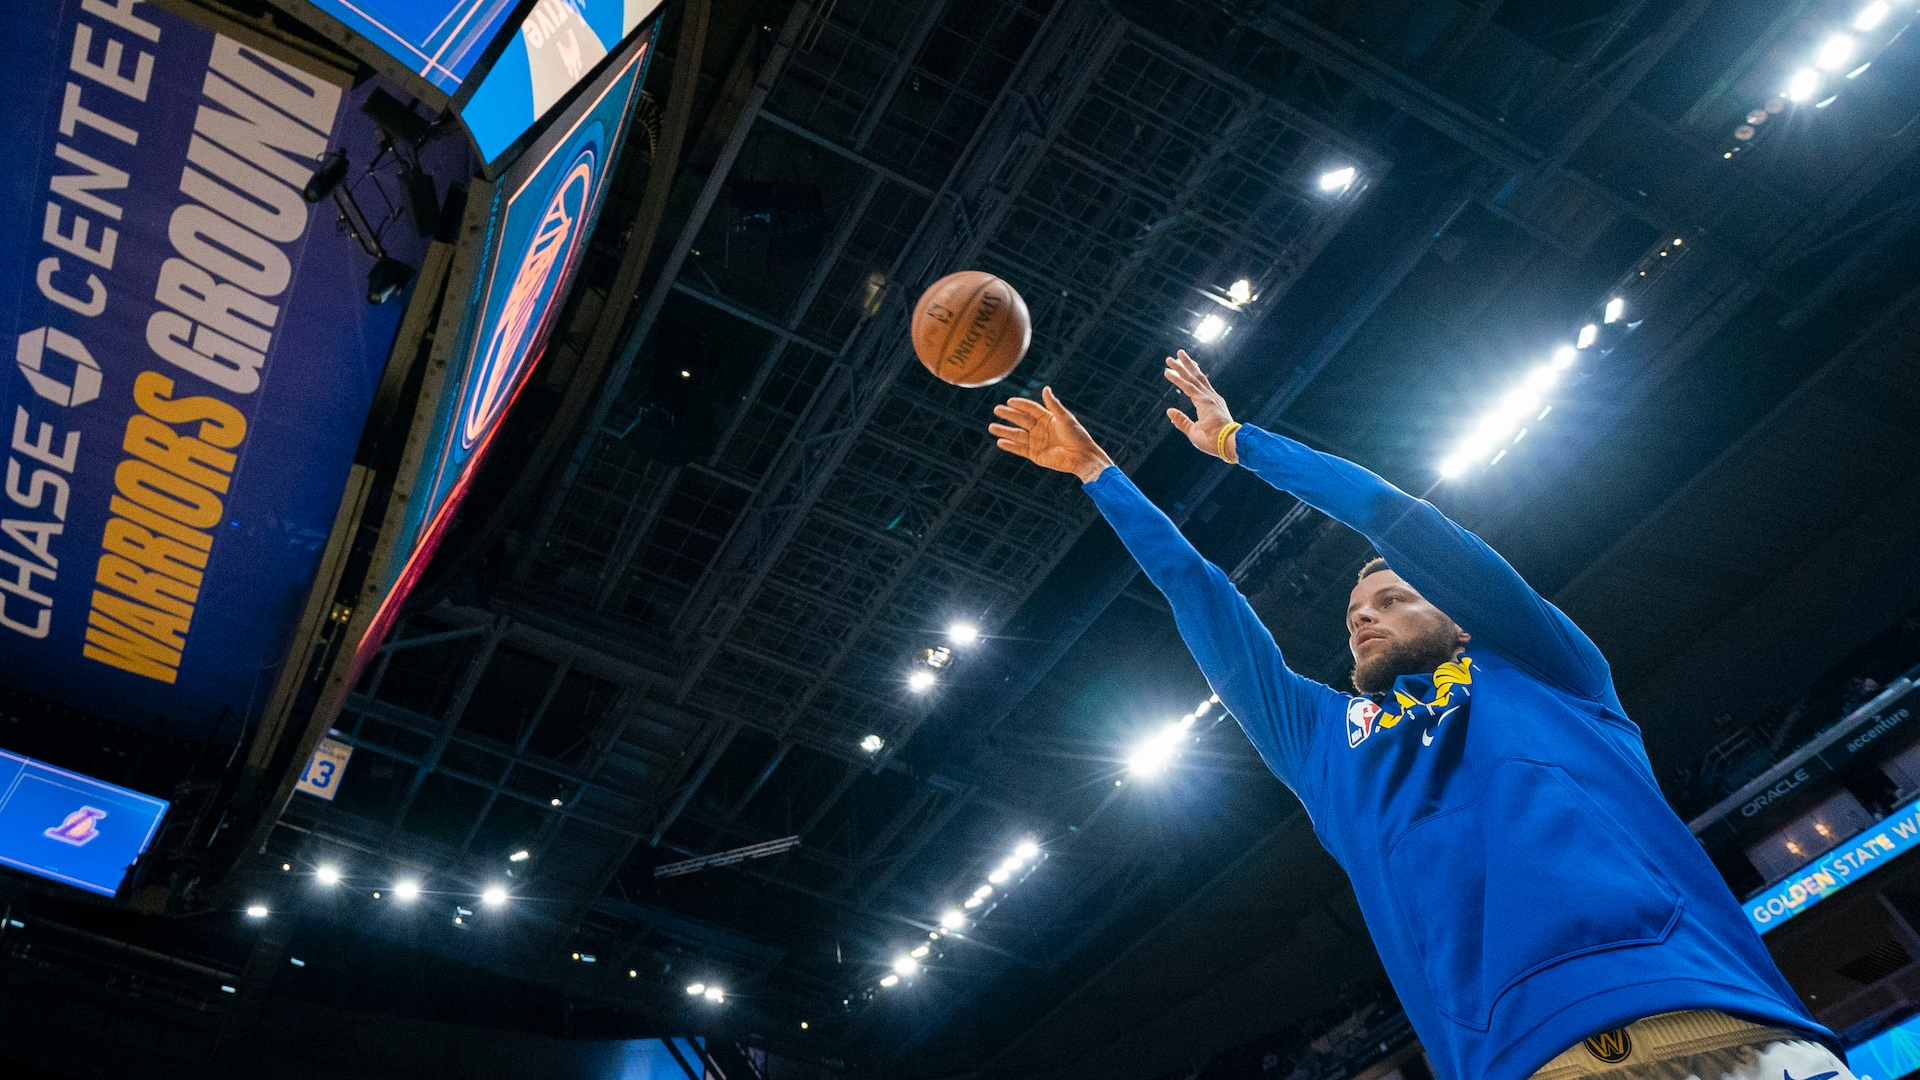 Stephen Curry's return a rare moment Warriors fans can relish this season